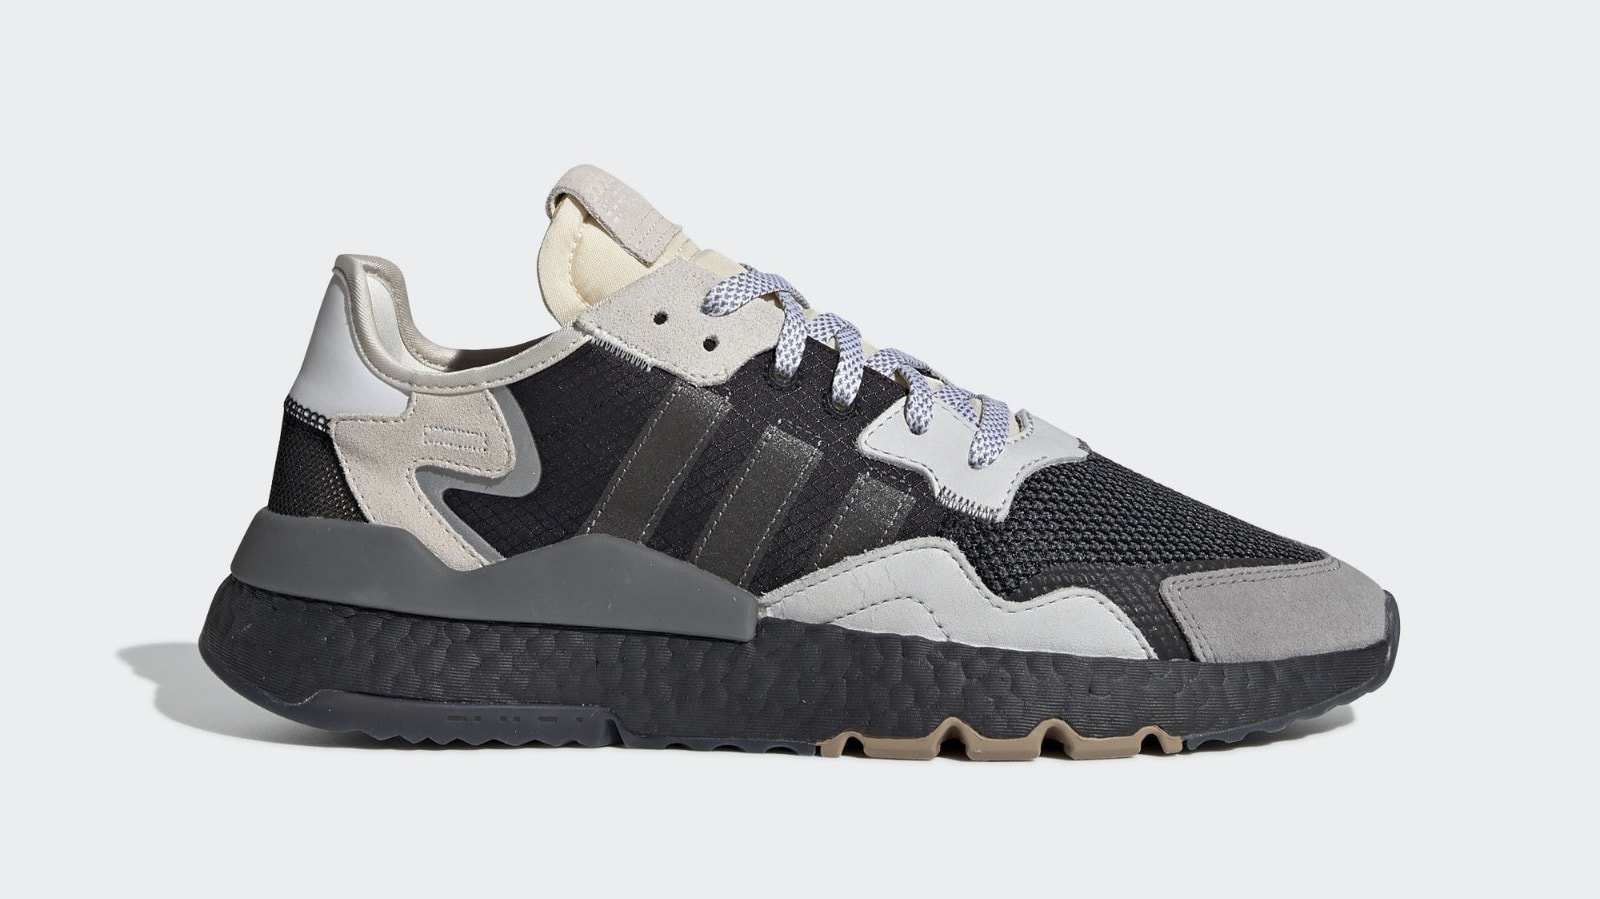 Adidas Nite Jogger 2019 adidas' Nite Jogger 2019 Launches in Black Ahead of Official Release